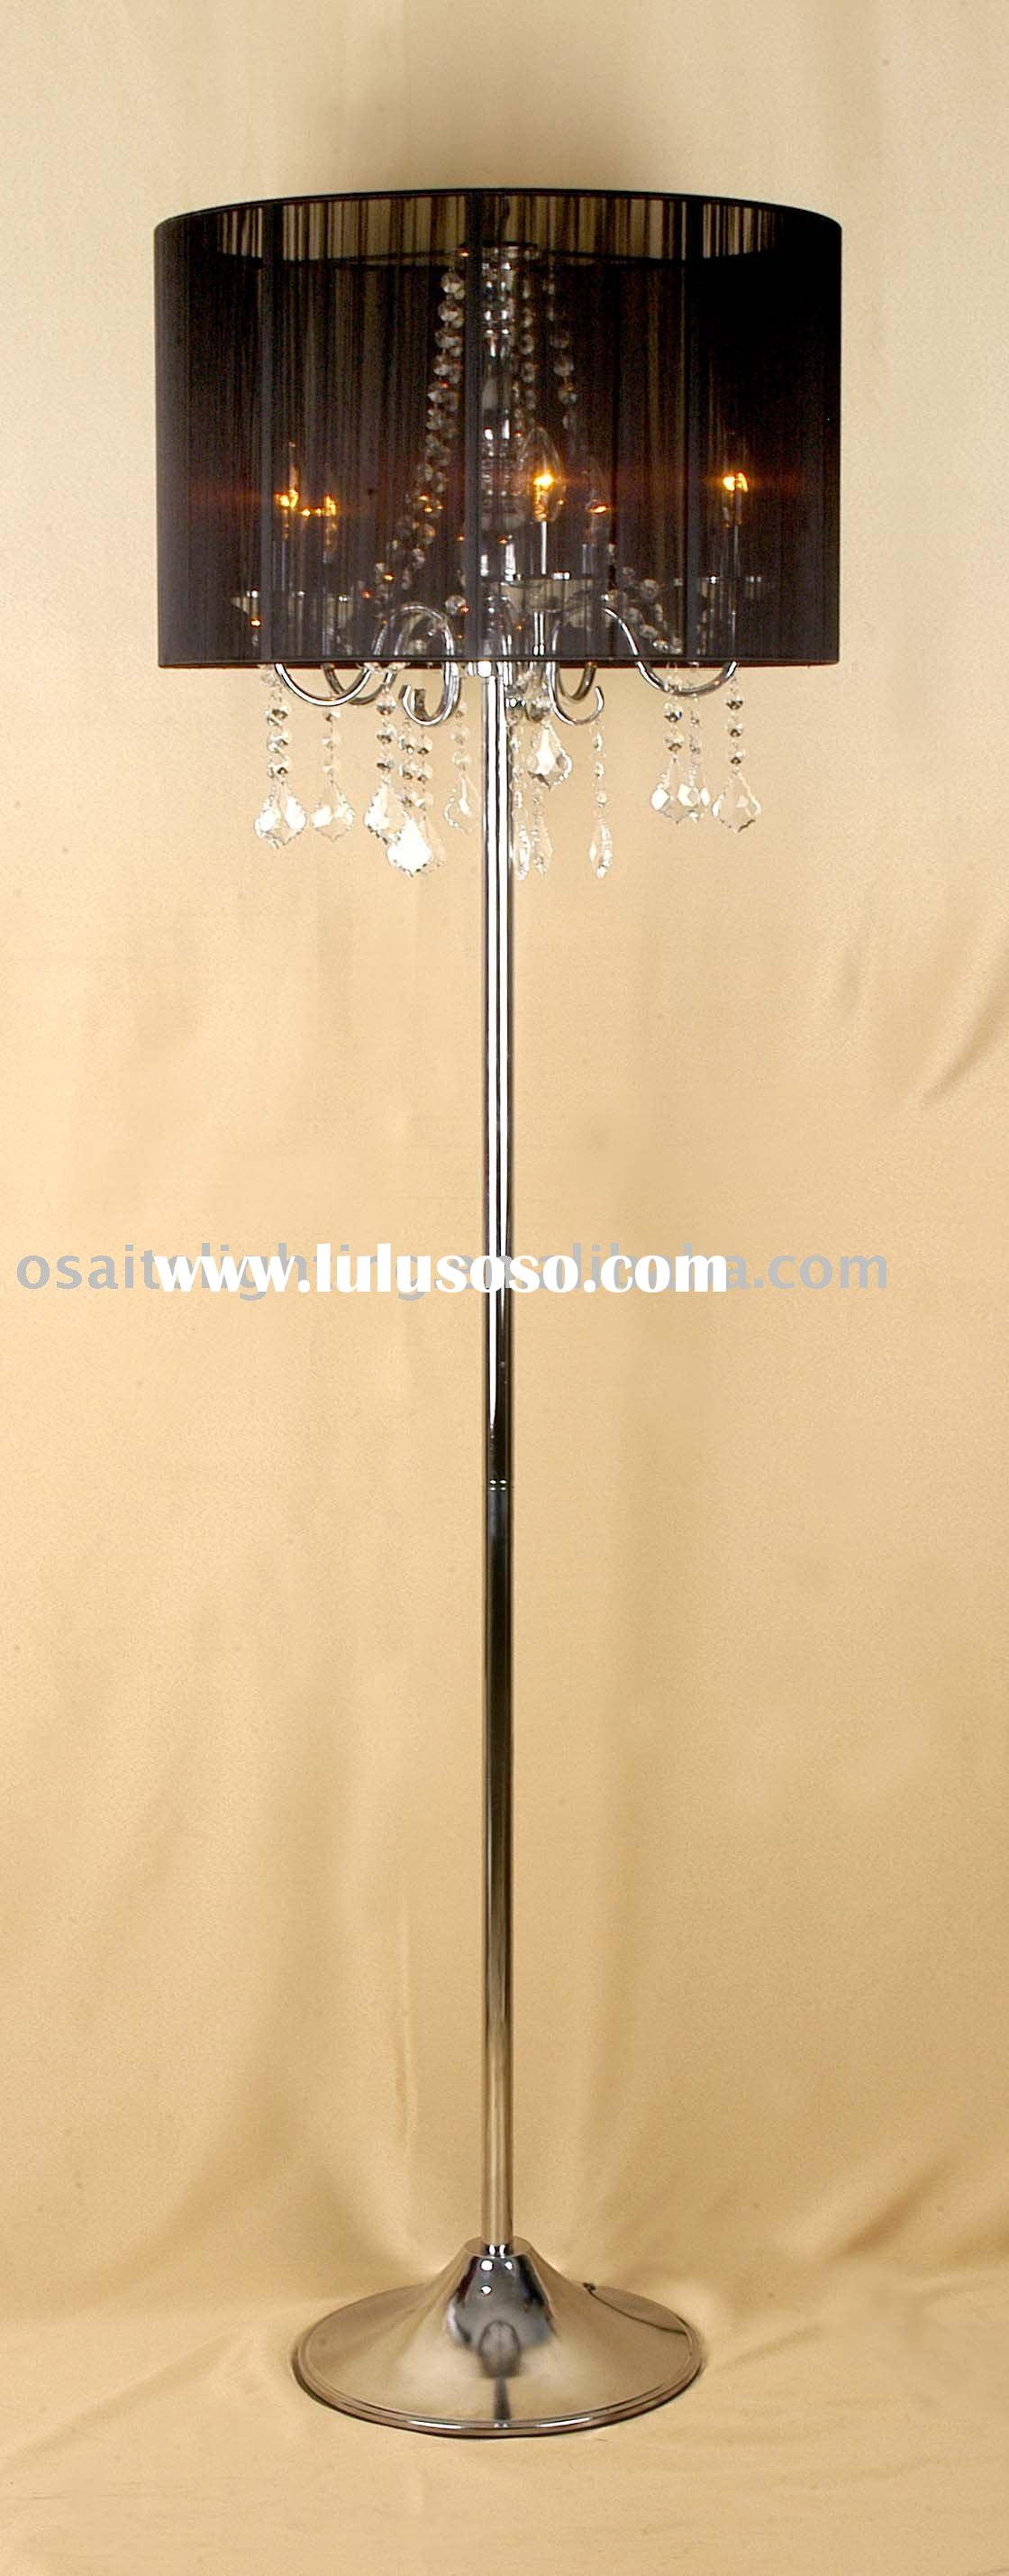 Crystal floor lamps personalise your room with the combination of crystal floor lamps photo 6 aloadofball Images